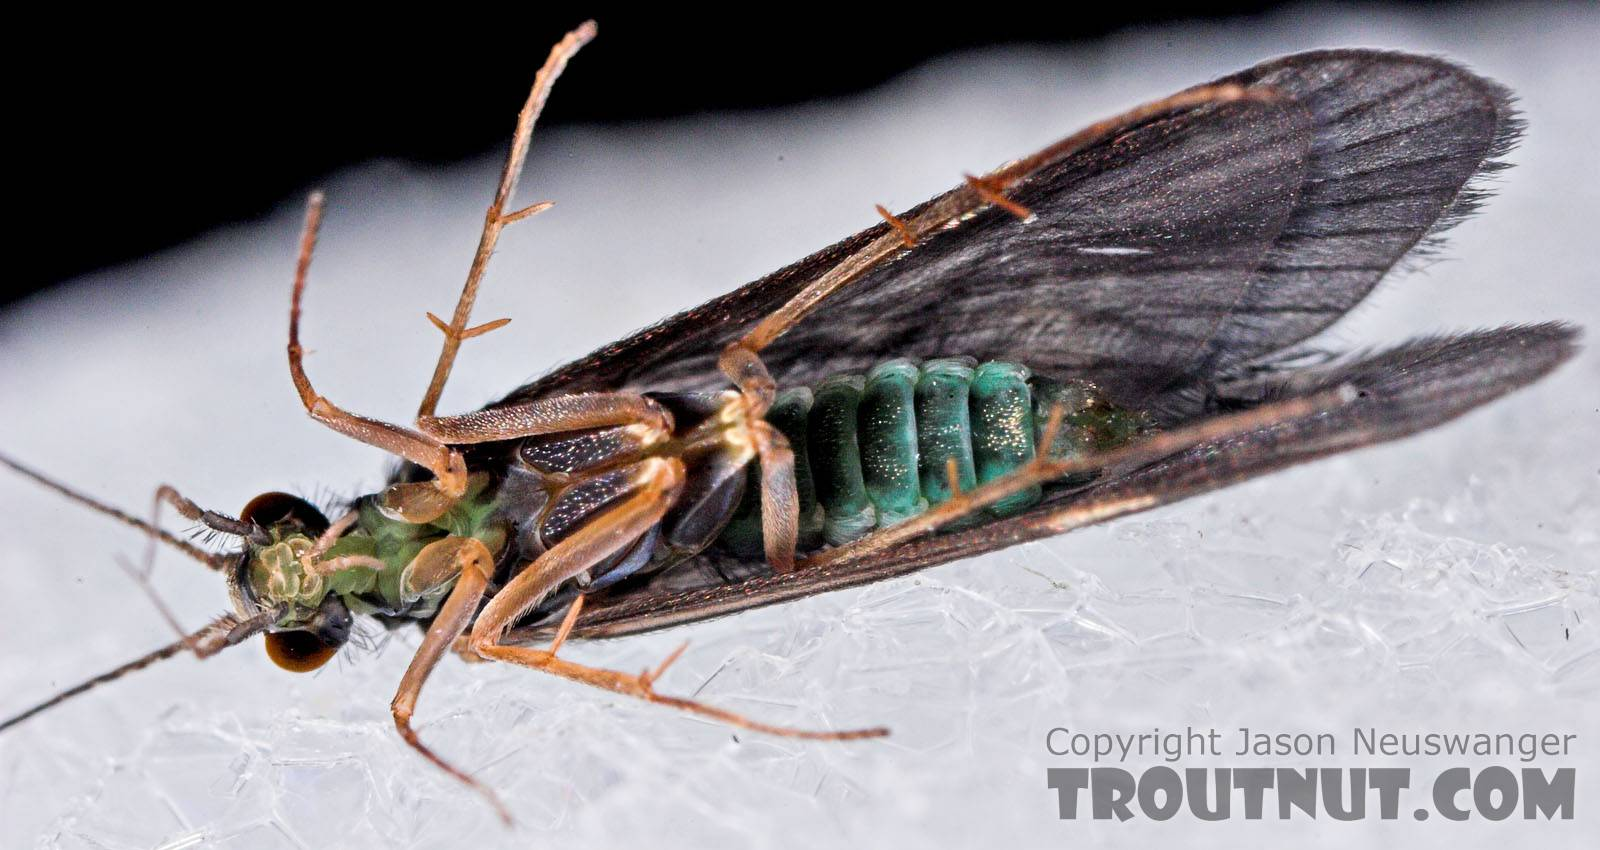 Cheumatopsyche (Little Sister Sedges) Caddisfly Adult from Mystery Creek #43 in New York